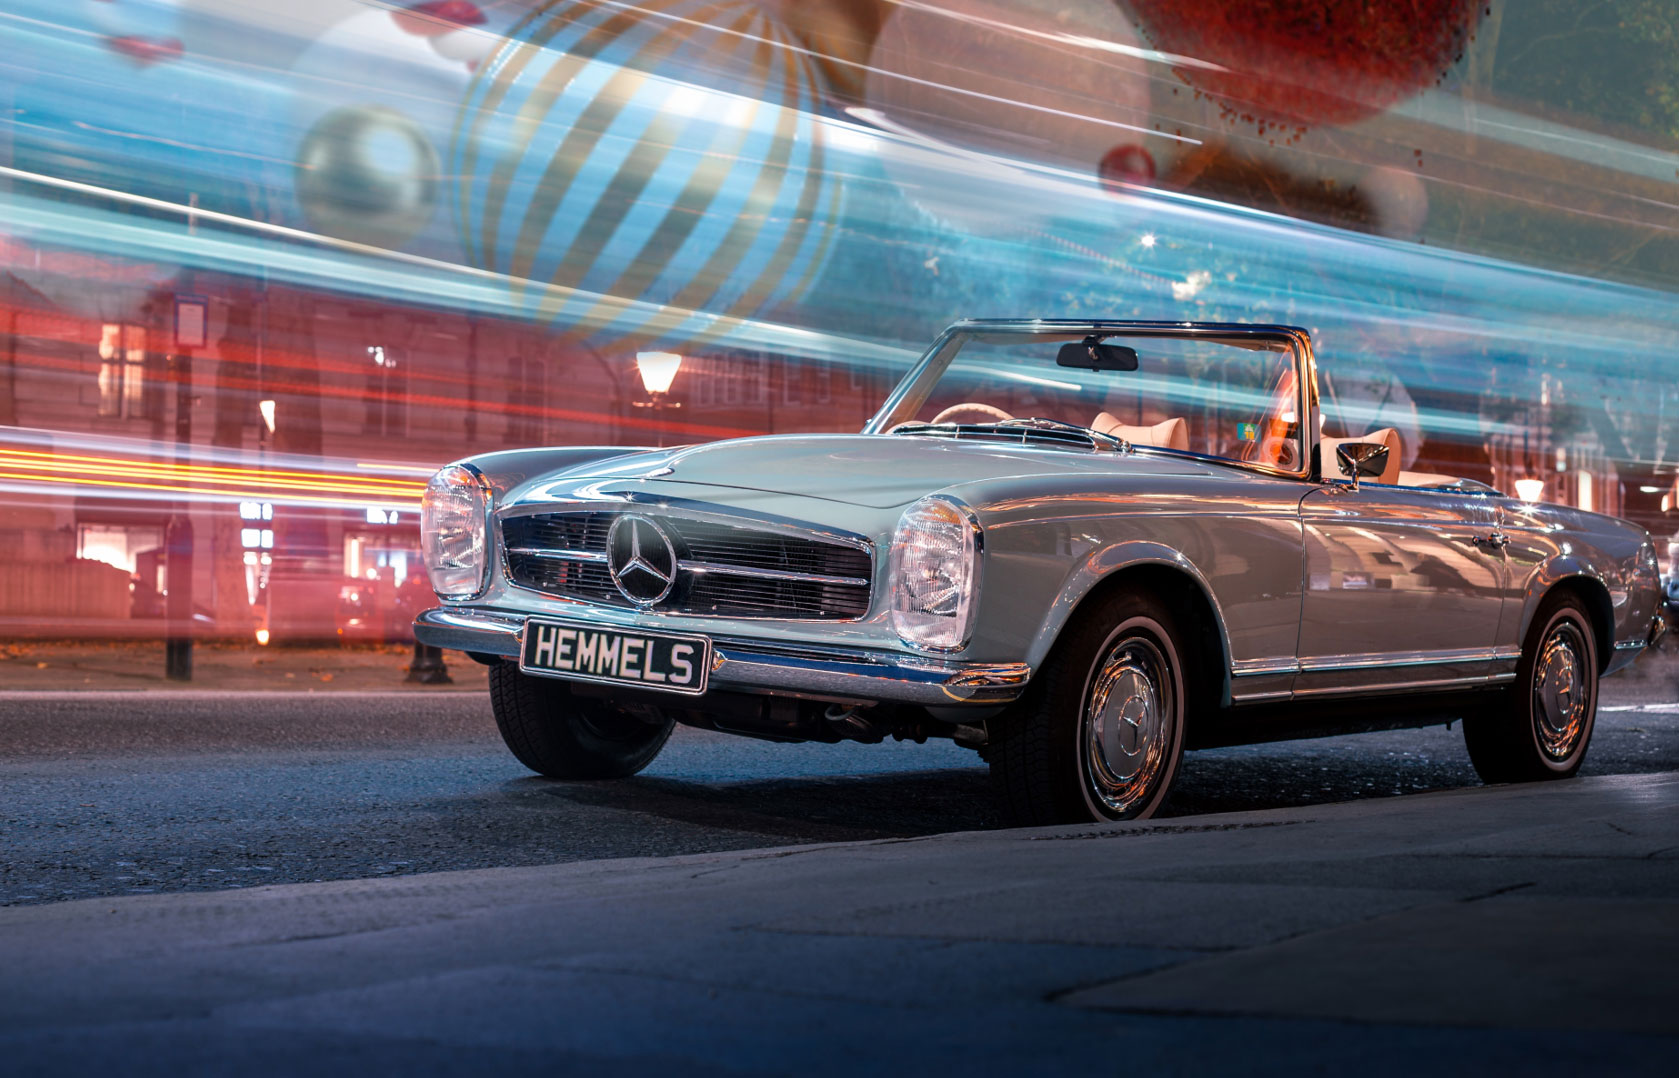 Classic Mercedes-Benz W198 300SL Roadster in silver with red interior and black hardtop in Cardiff